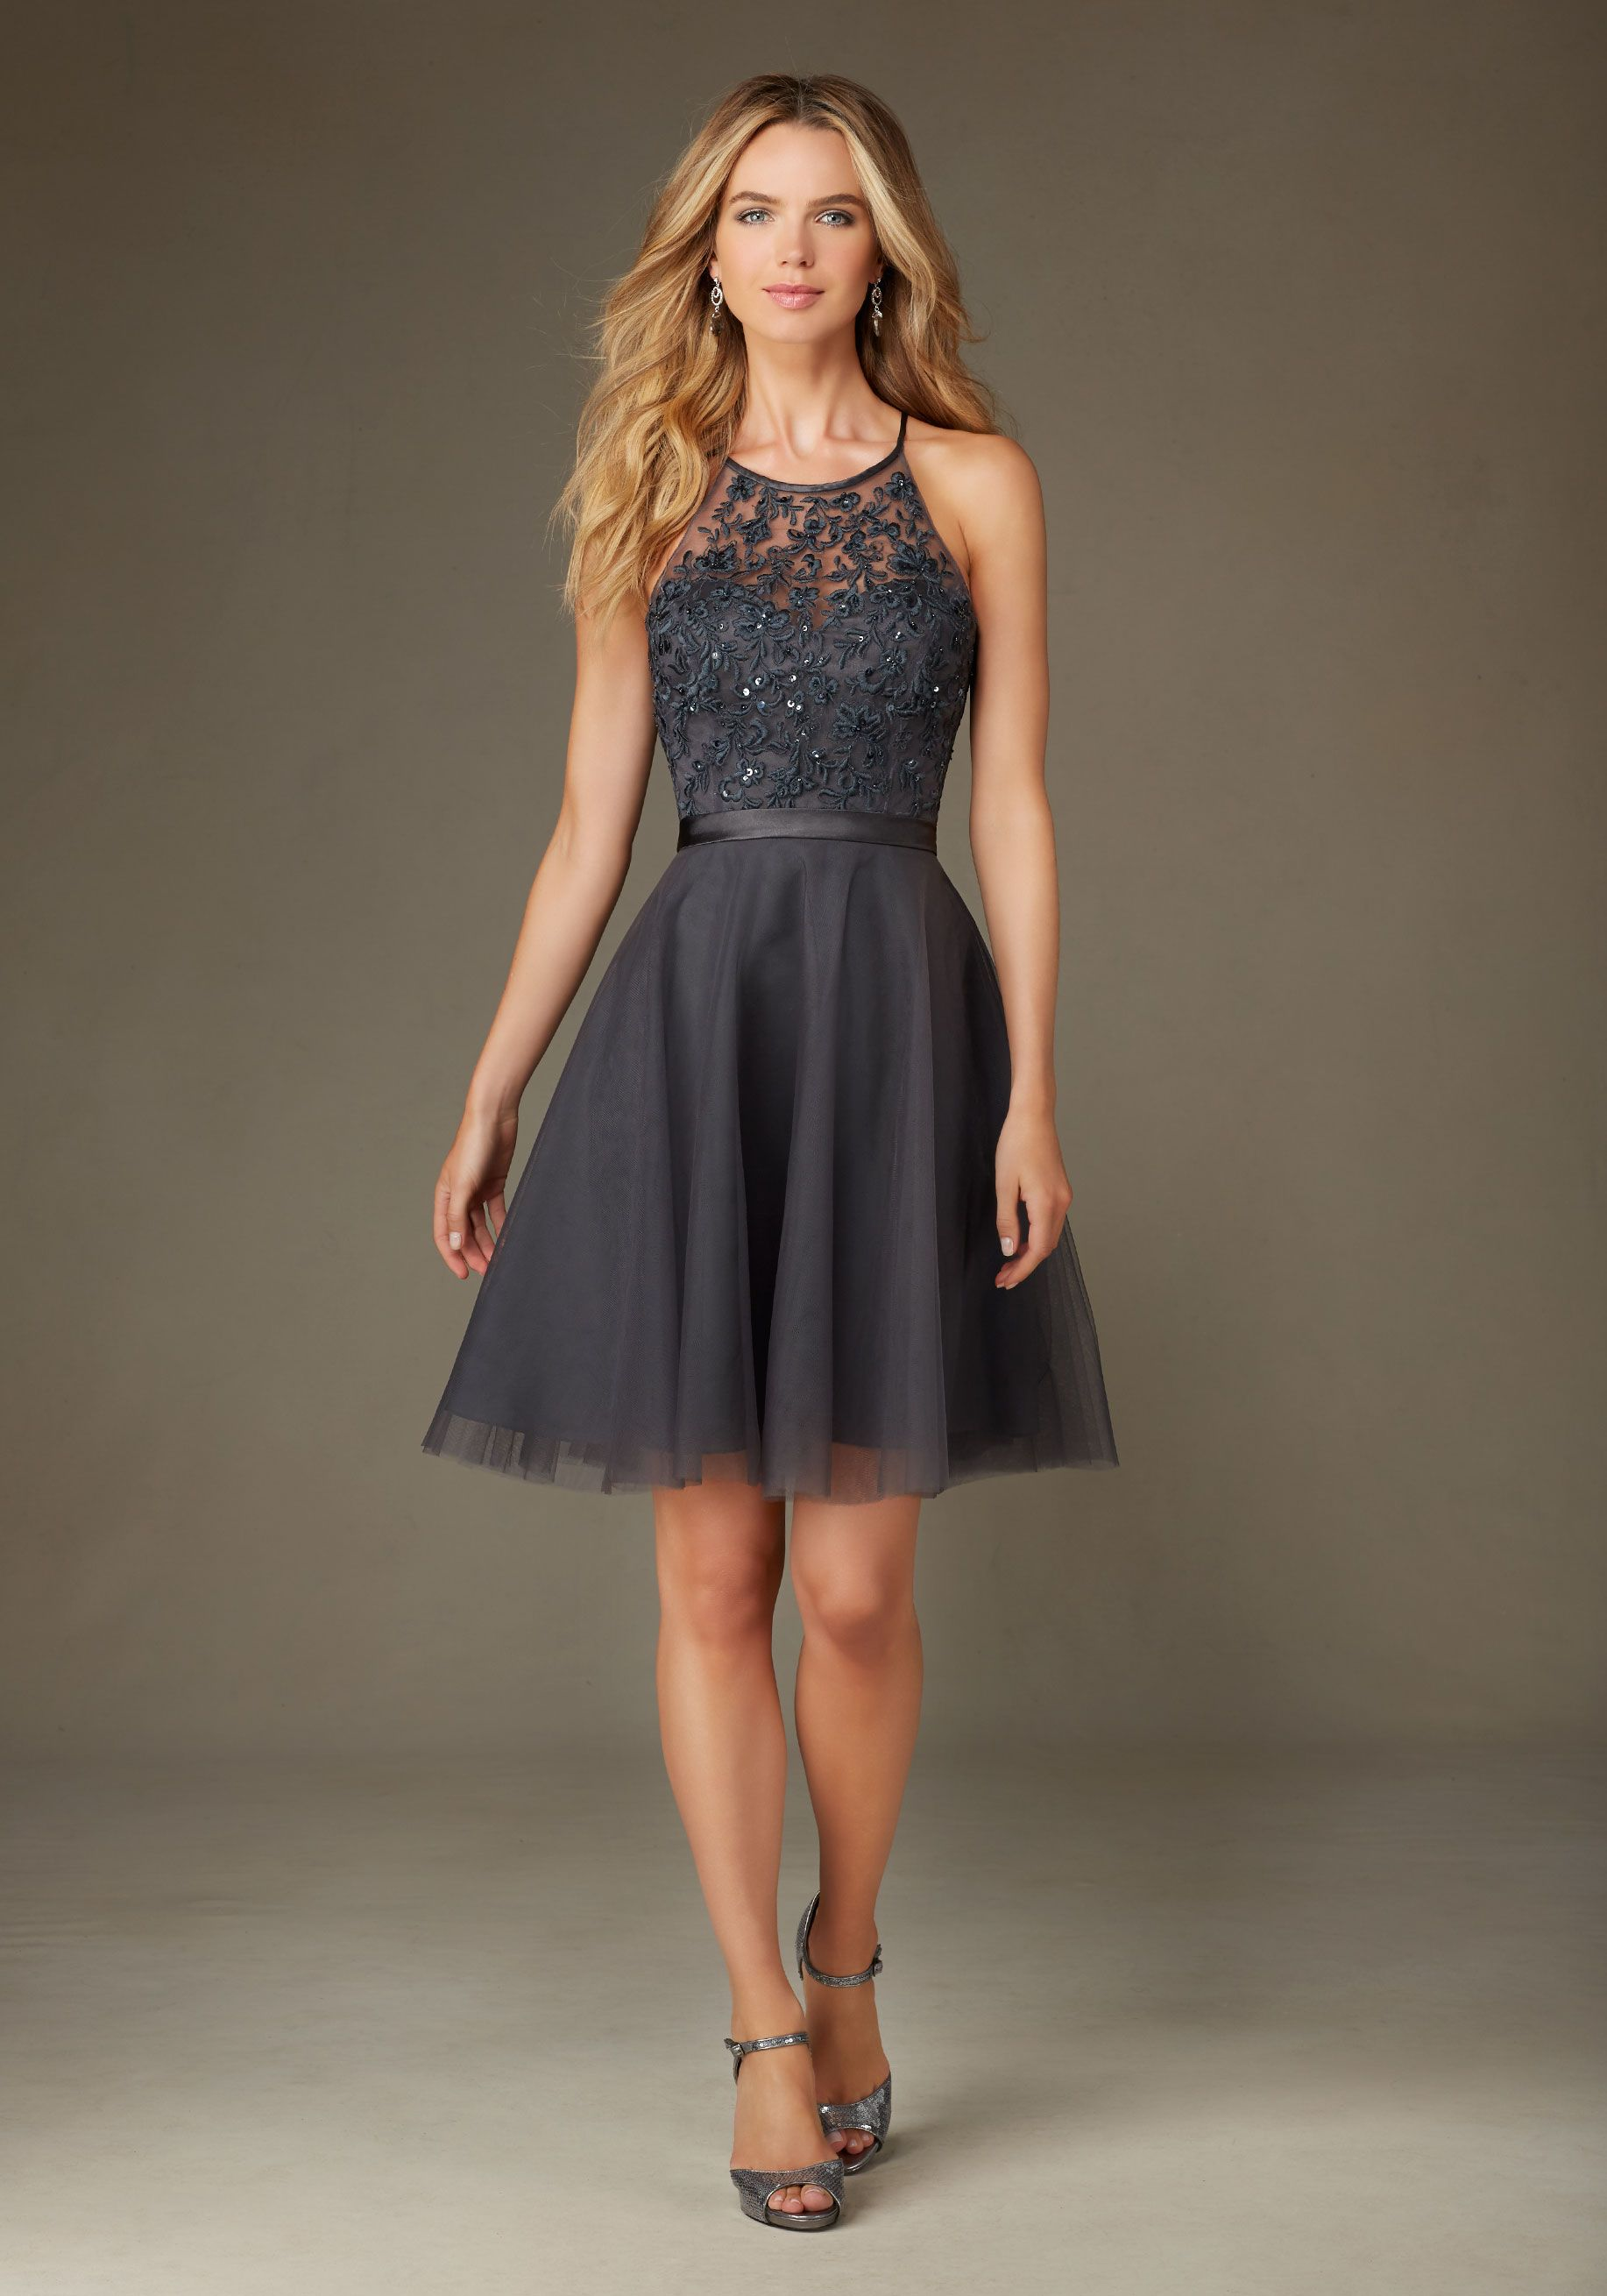 Short Tulle Bridesmaid Dress with Embroidery and Beading with Satin